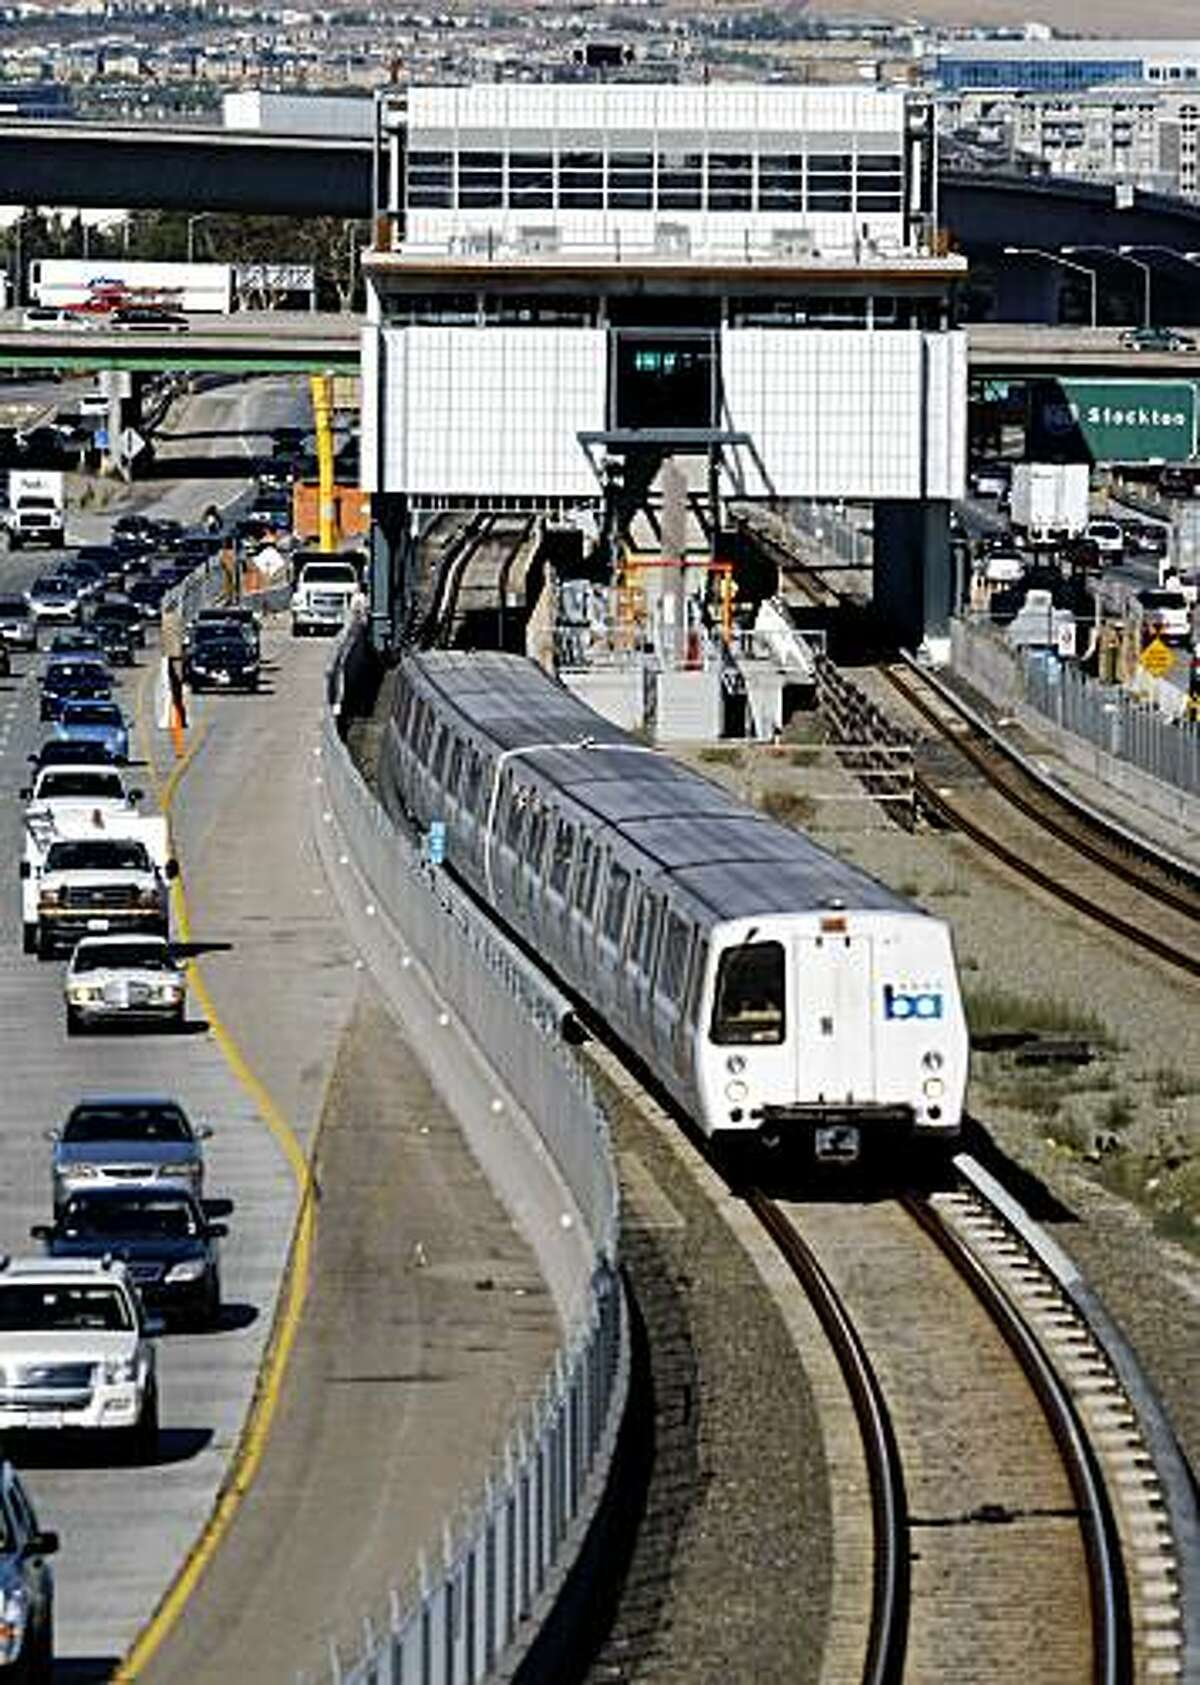 A BART train rolls past the West Dublin station, which is under construction, on Wednesday July 16, 2009, in Dublin, Calif., where a construction worker was struck by a train this afternoon.